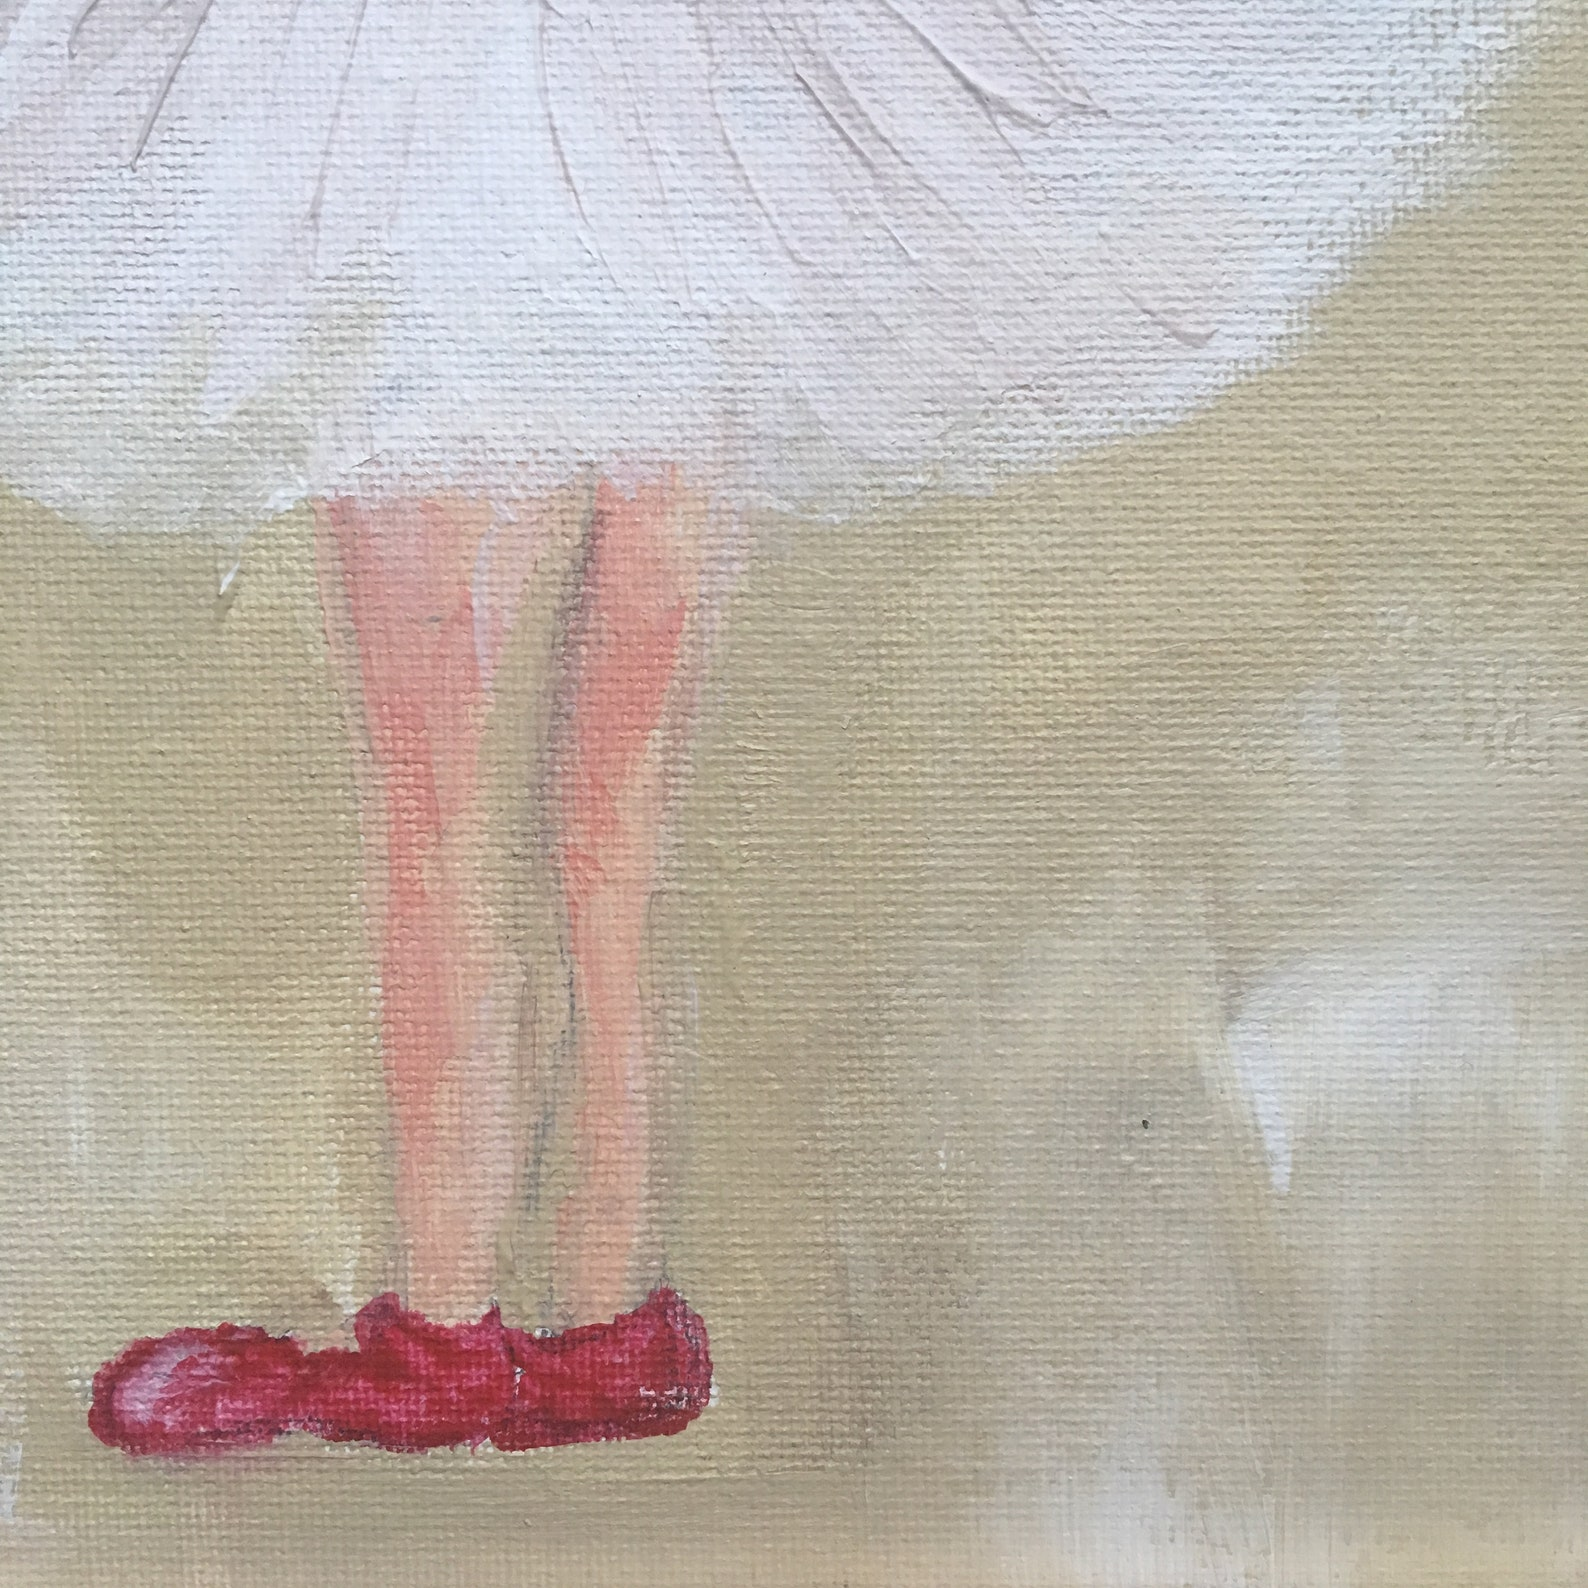 junior ballet dancer in her red ballet shoes an original acrylic on a 12